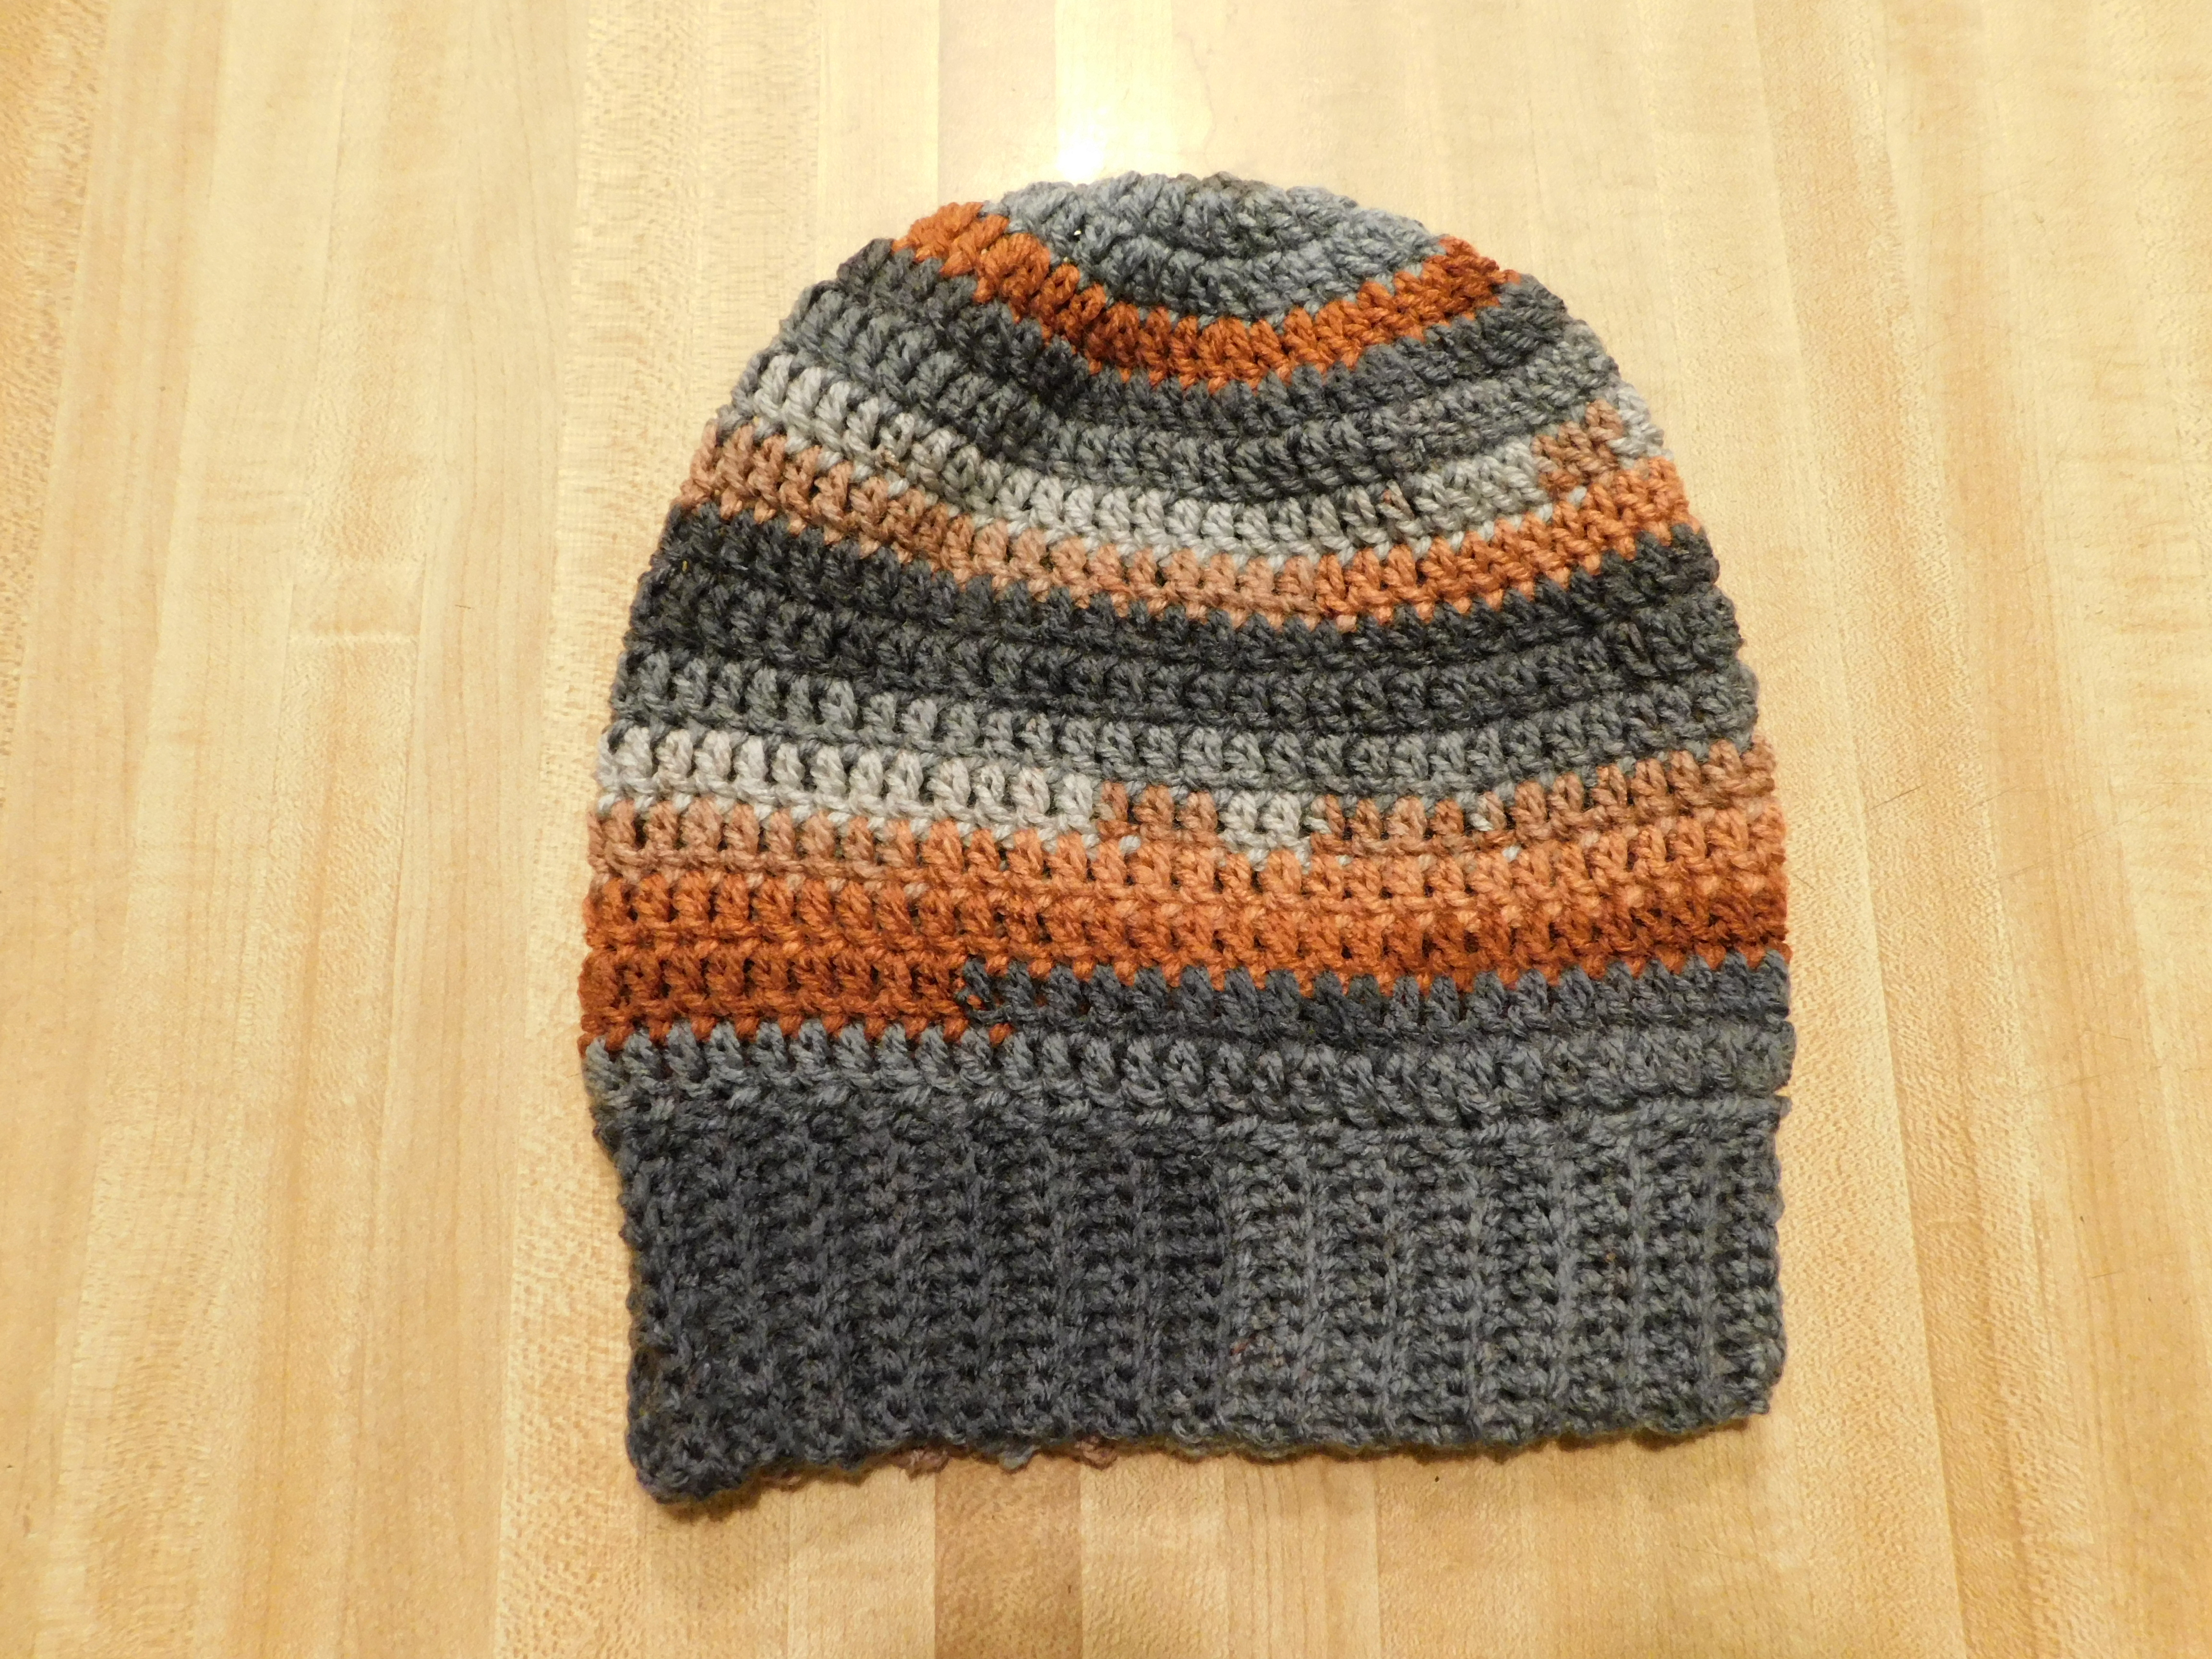 Crocheted Hat #31